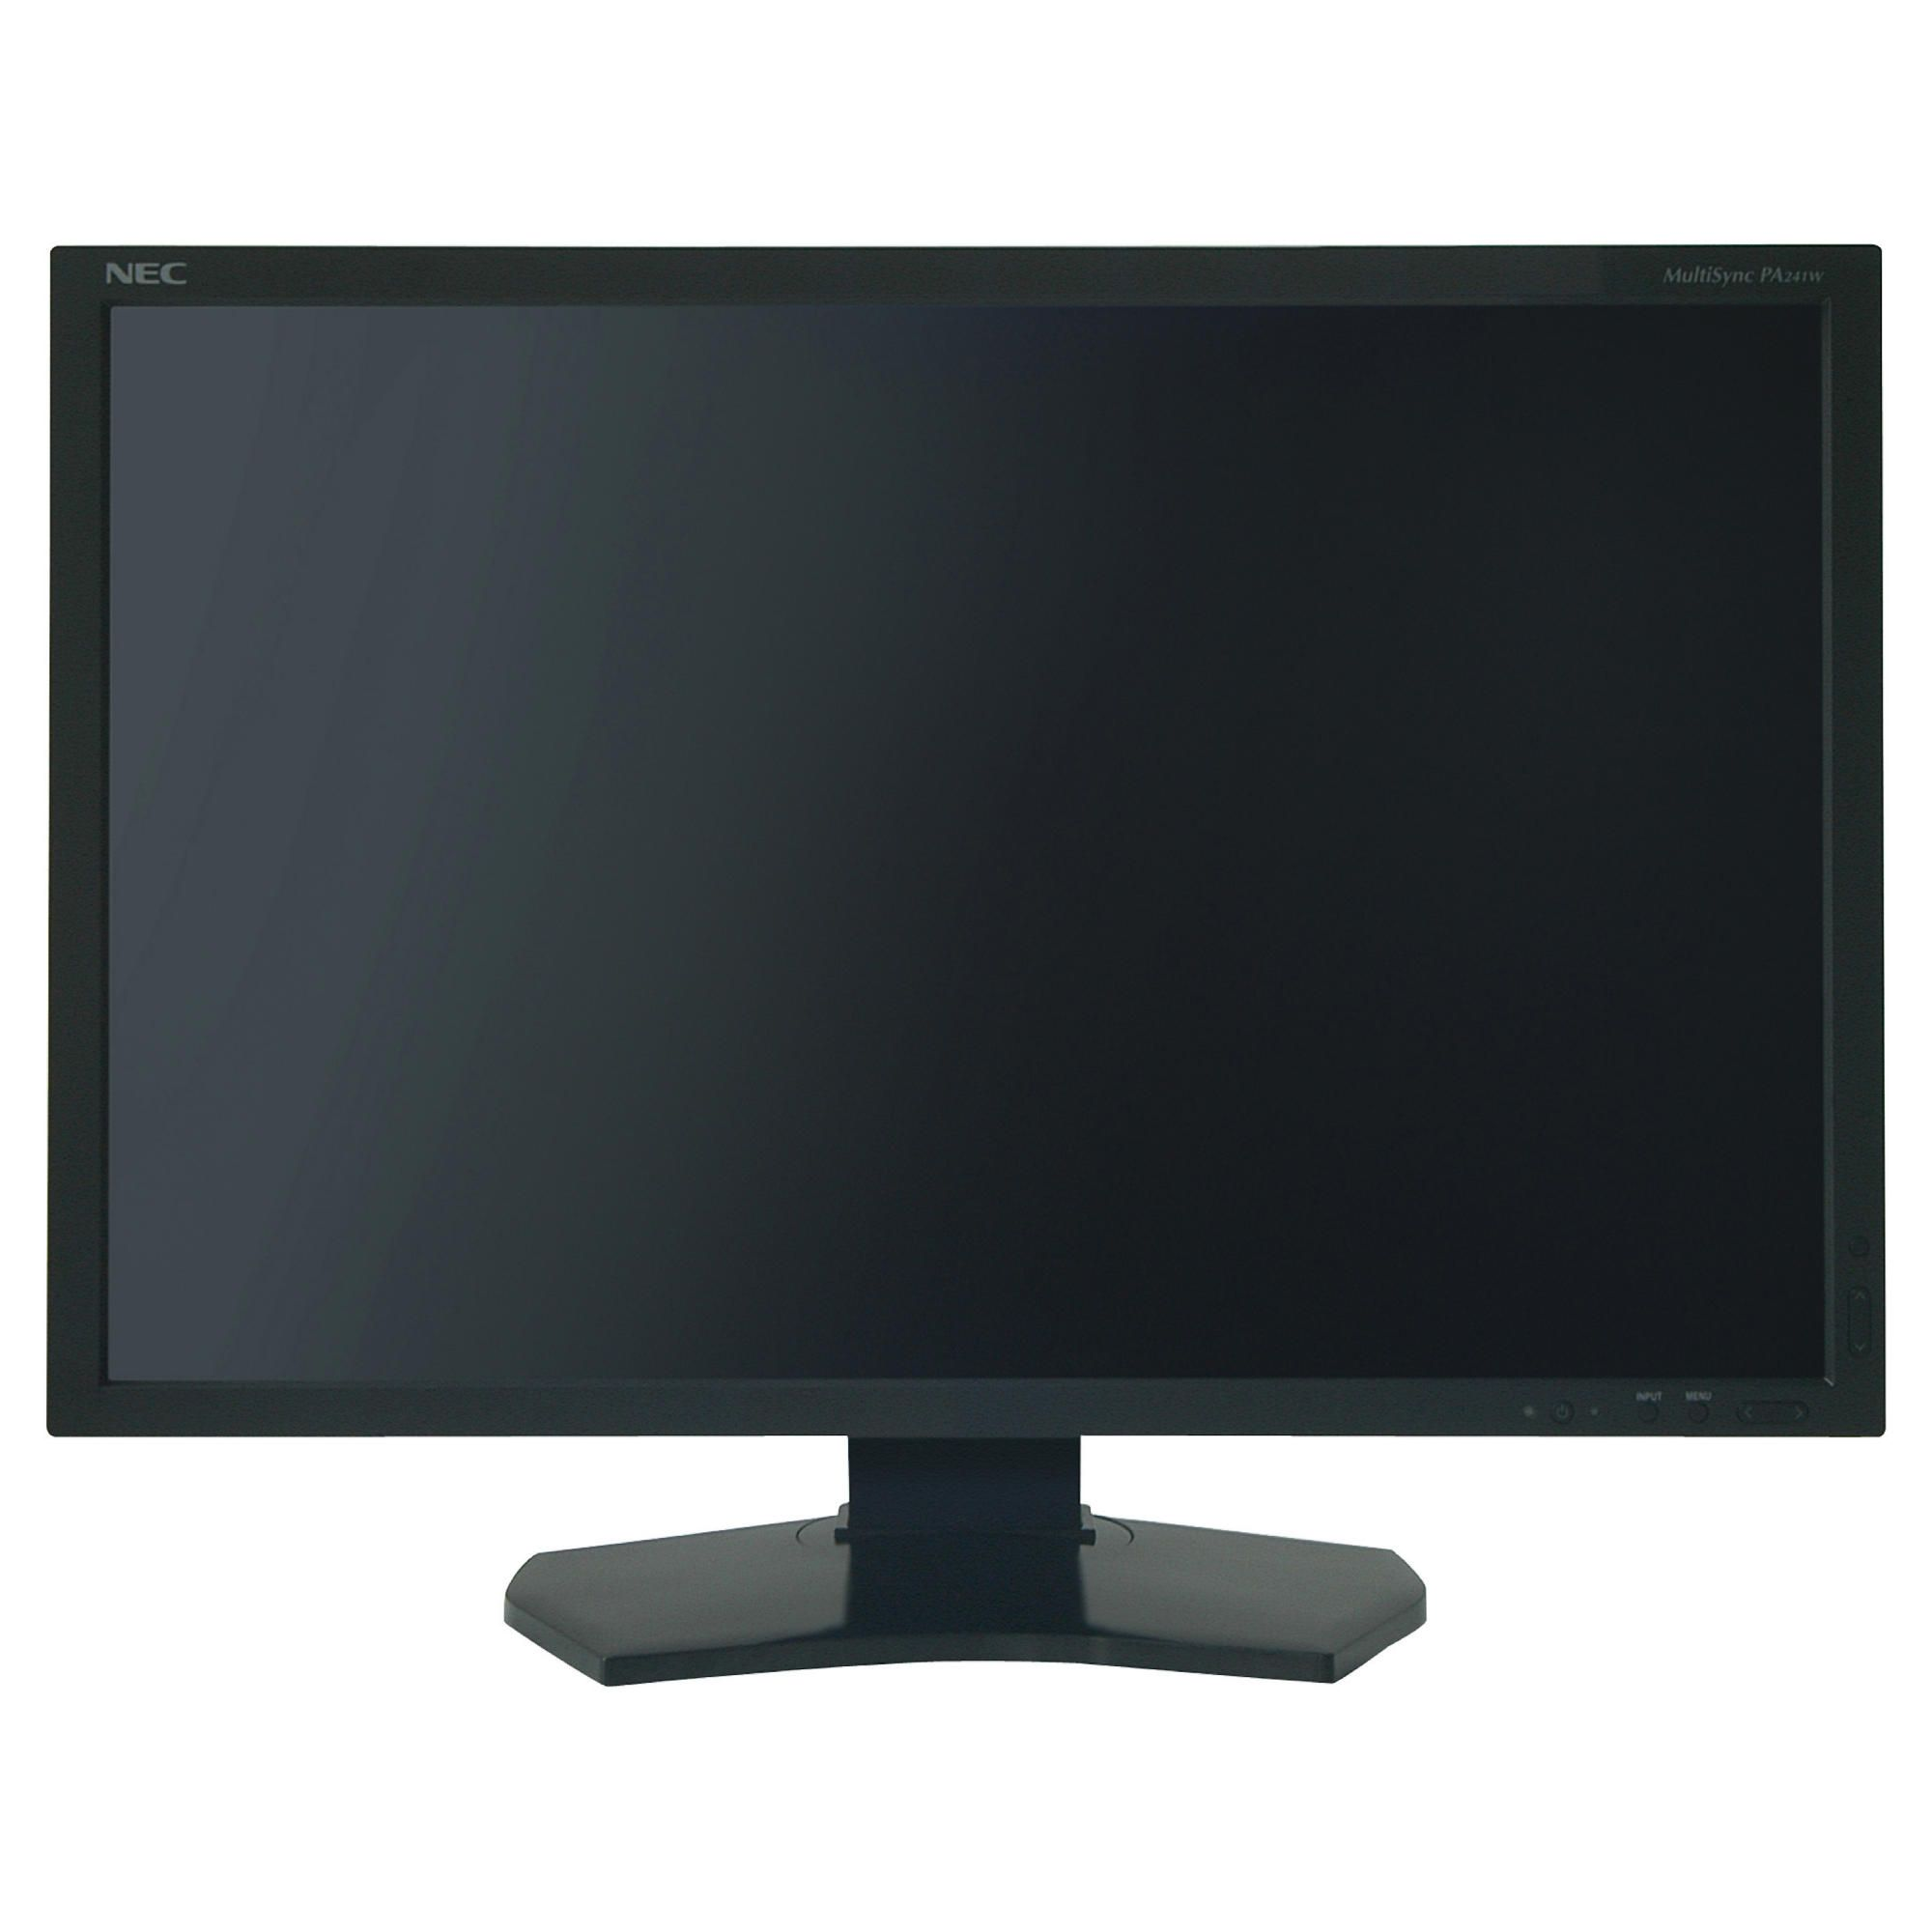 NEC PA241WB 24'' LCD Monitor Black at Tesco Direct